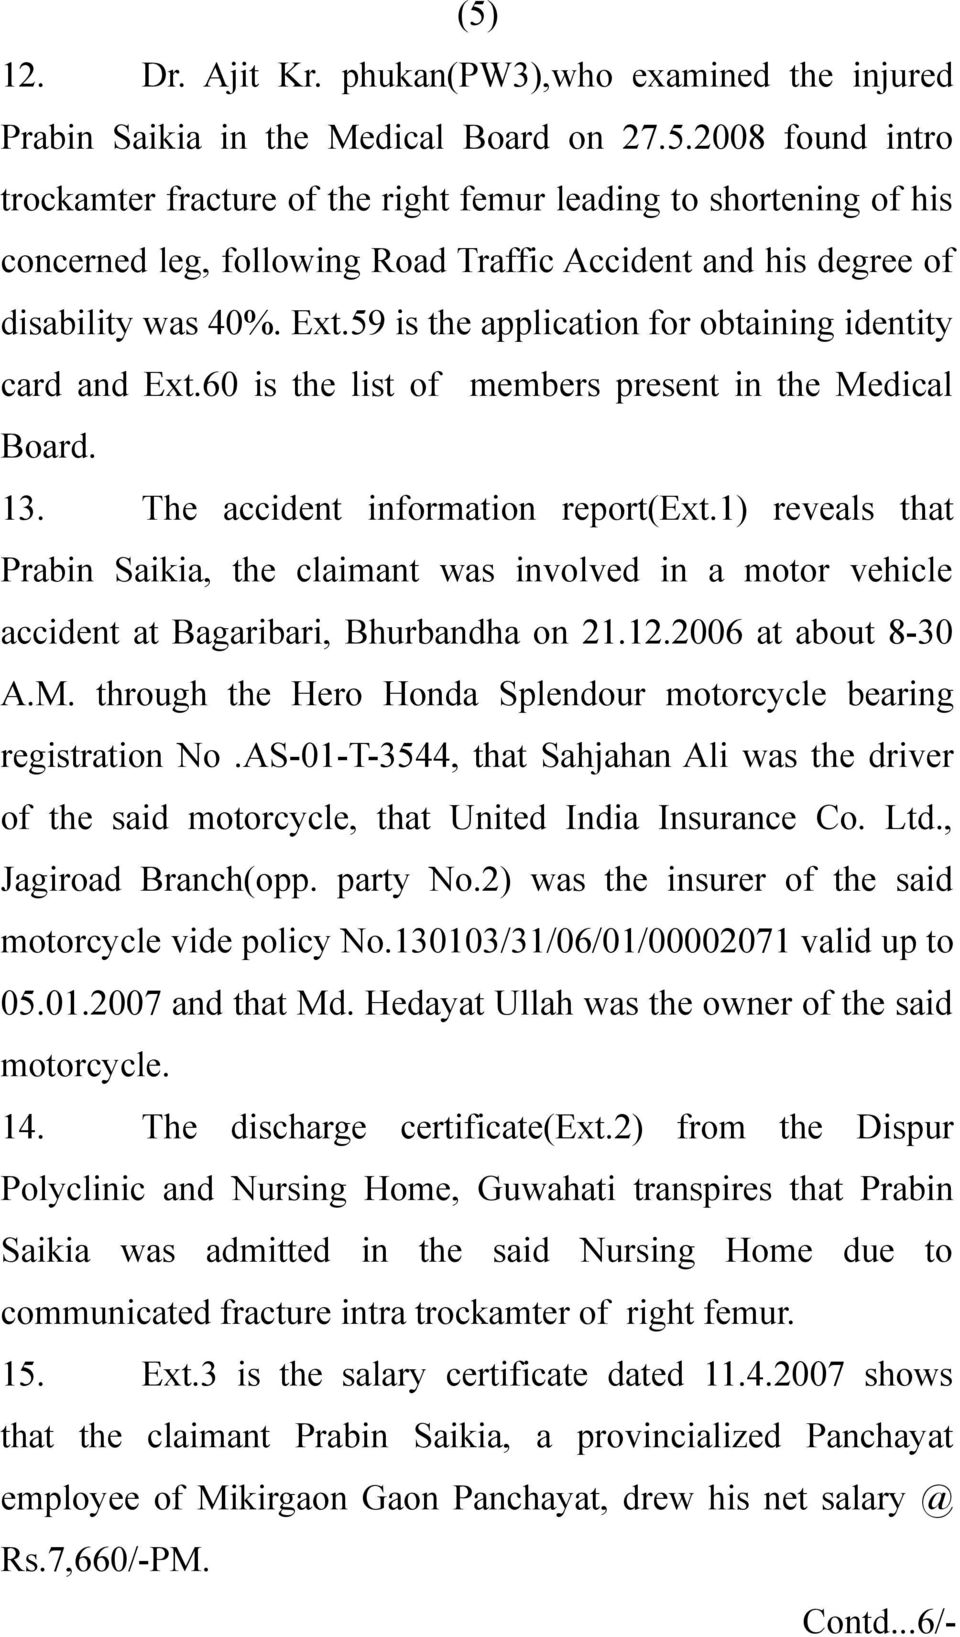 1) reveals that Prabin Saikia, the claimant was involved in a motor vehicle accident at Bagaribari, Bhurbandha on 21.12.2006 at about 8-30 A.M.